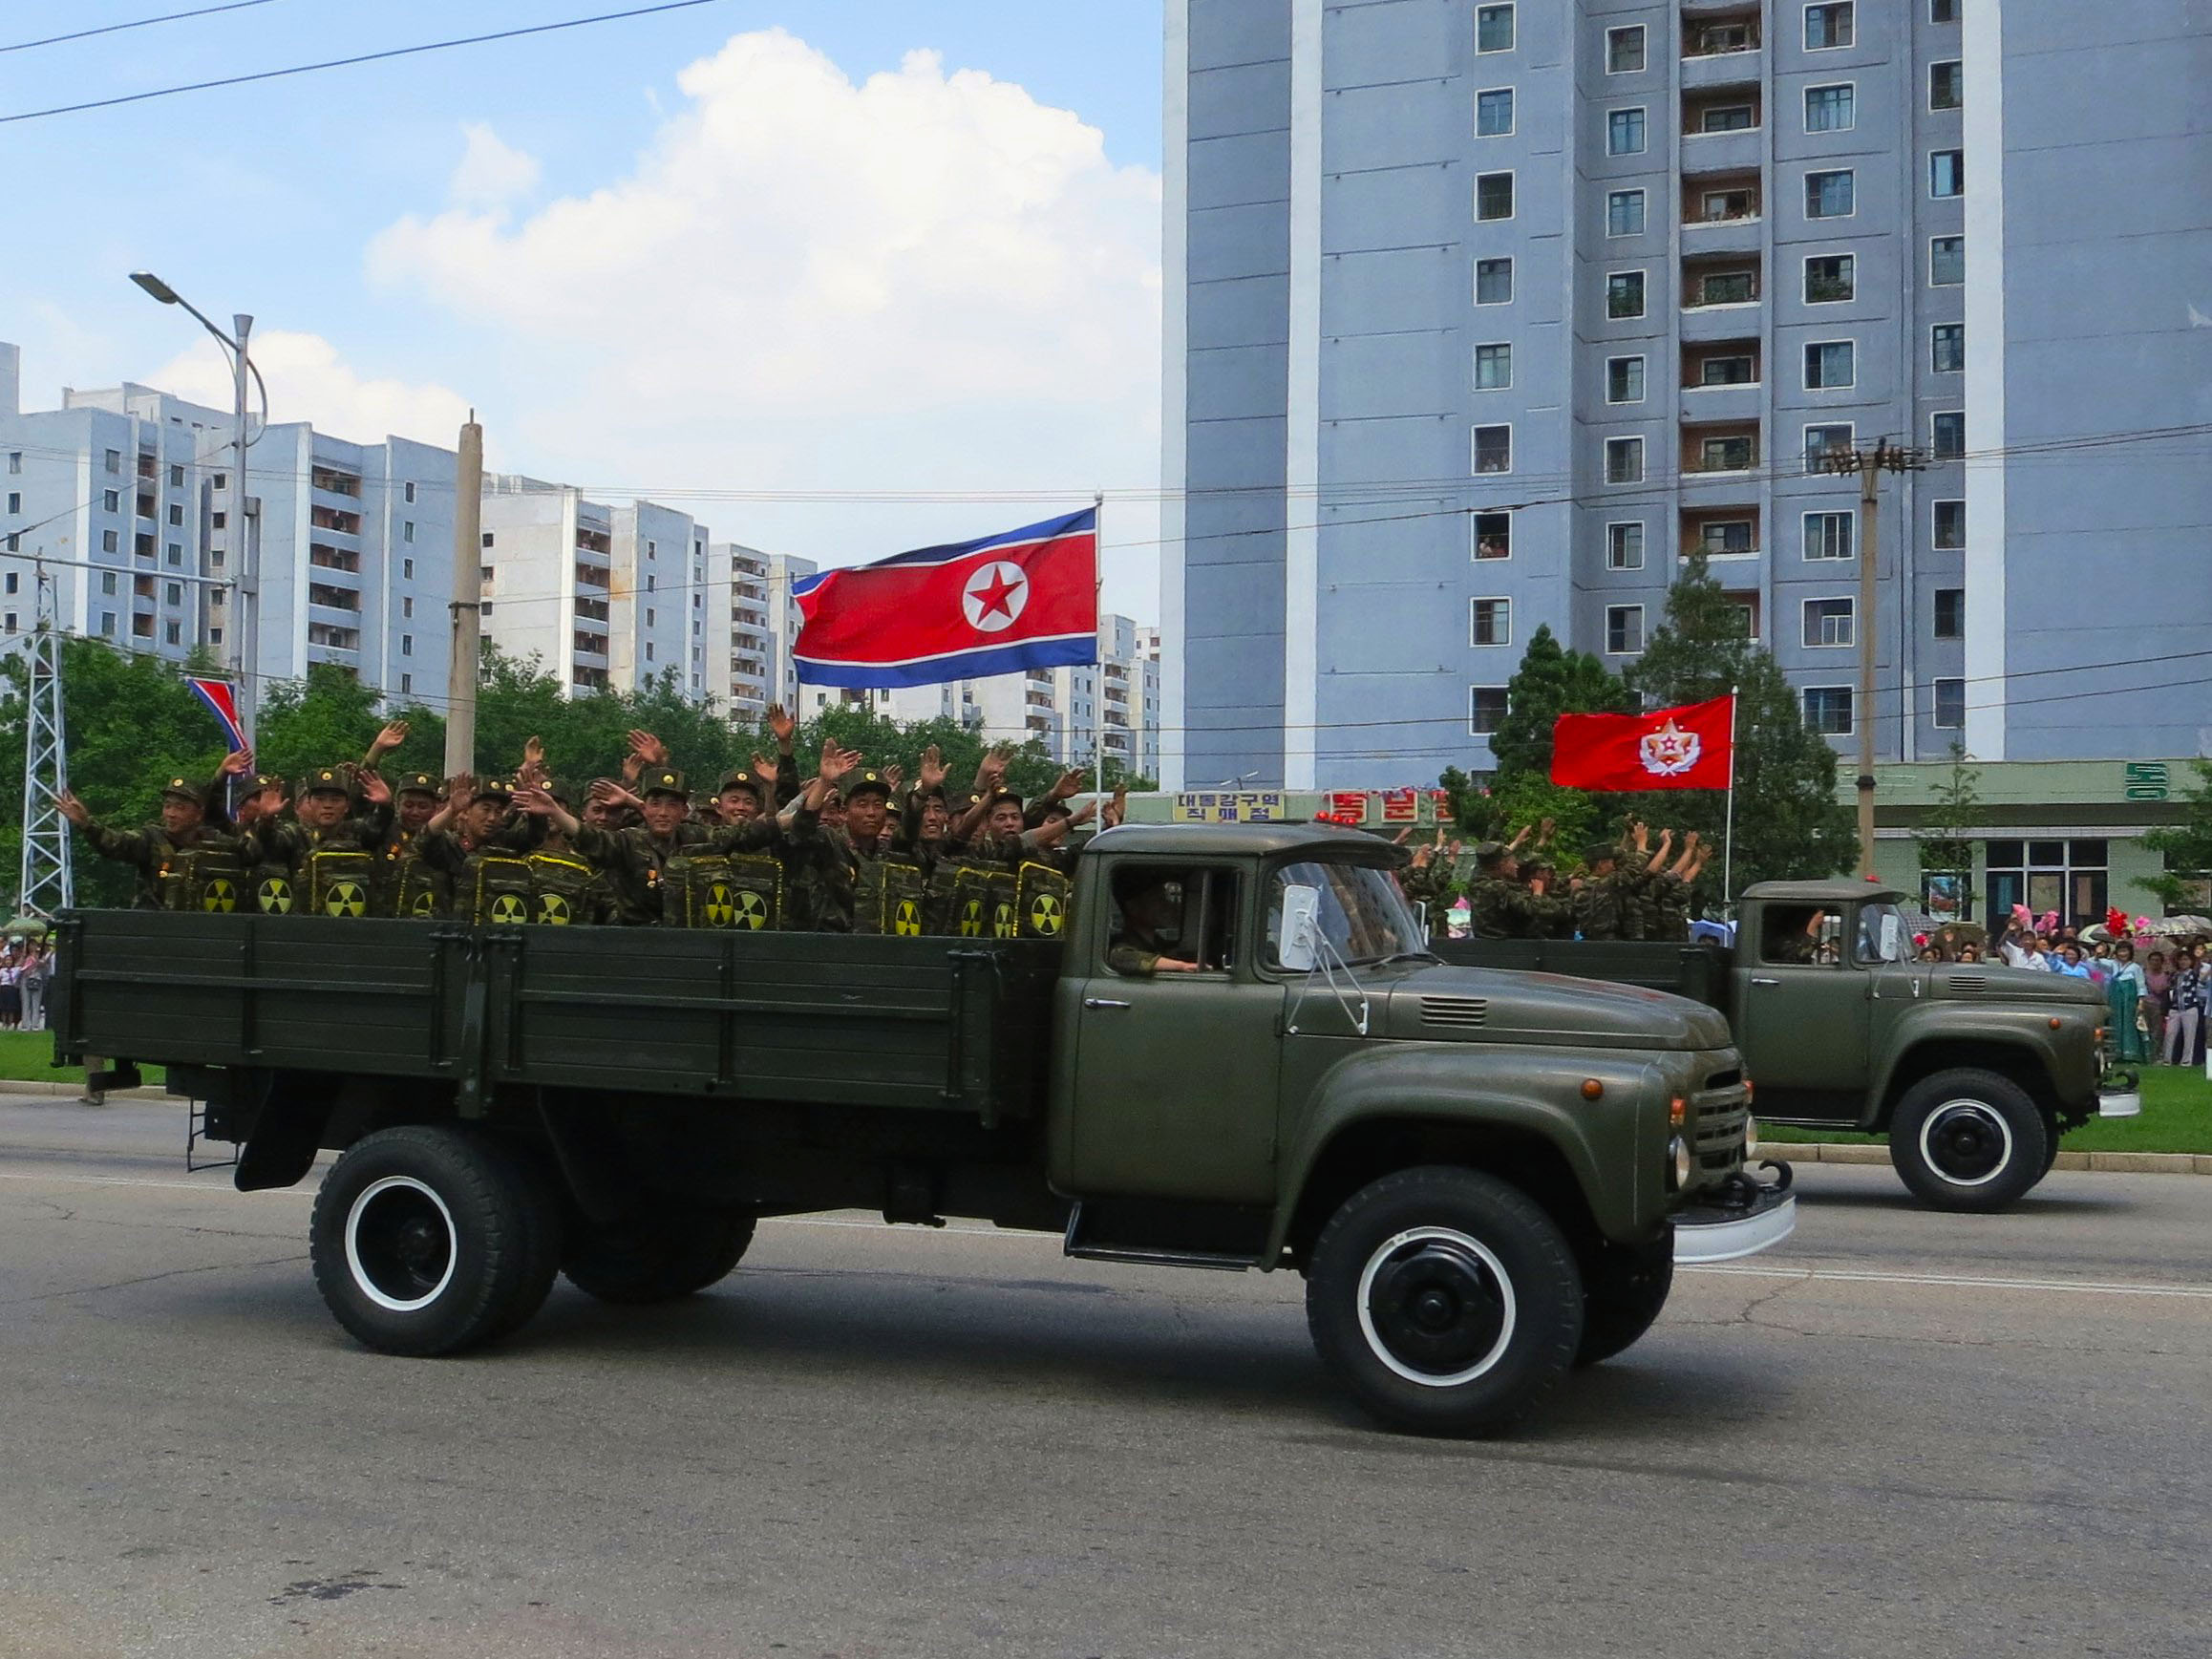 The Dangers of Nuclear Nationalism in DPRK